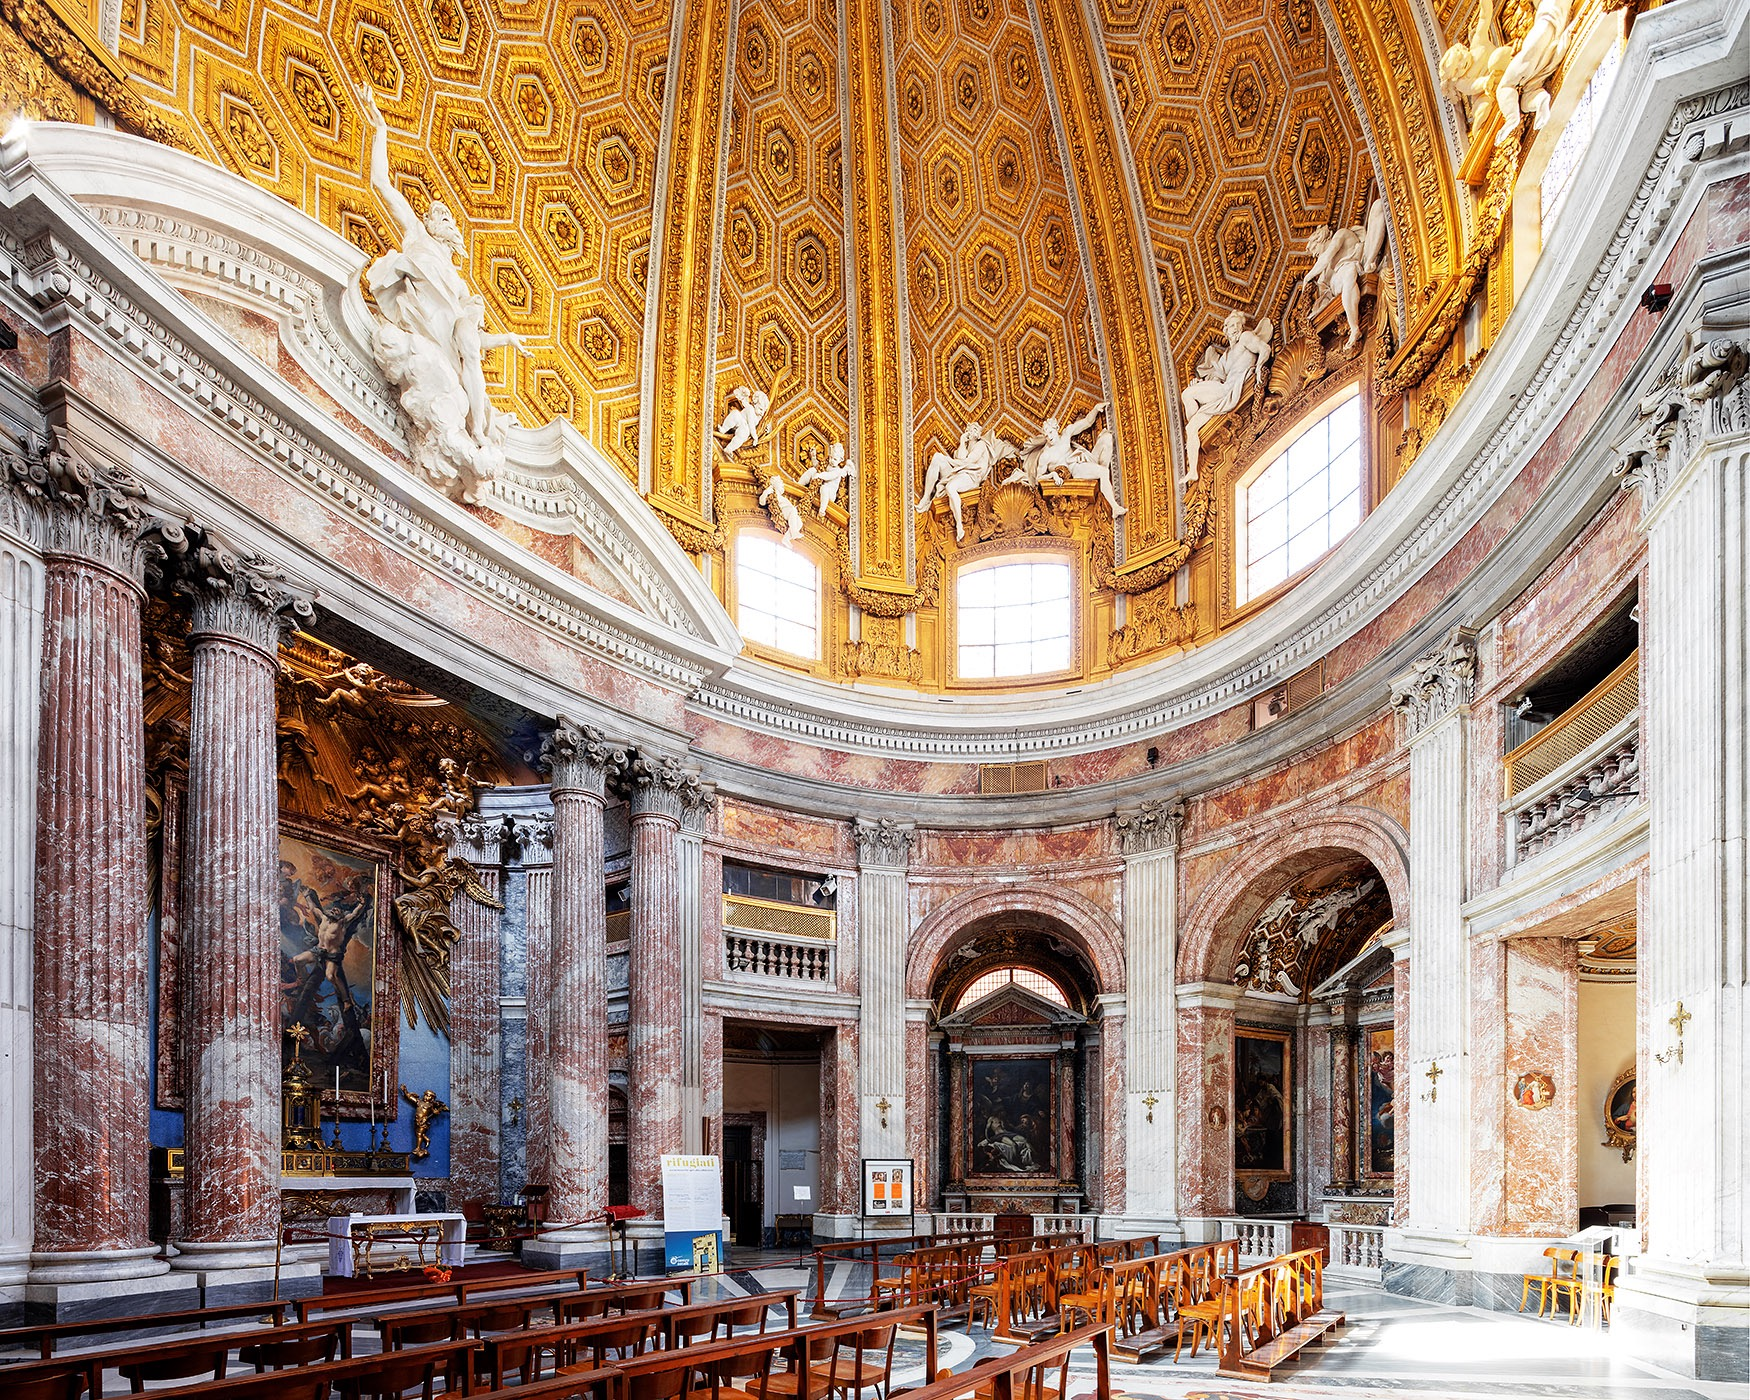 The Church of Saint Andrew's at the Quirinal